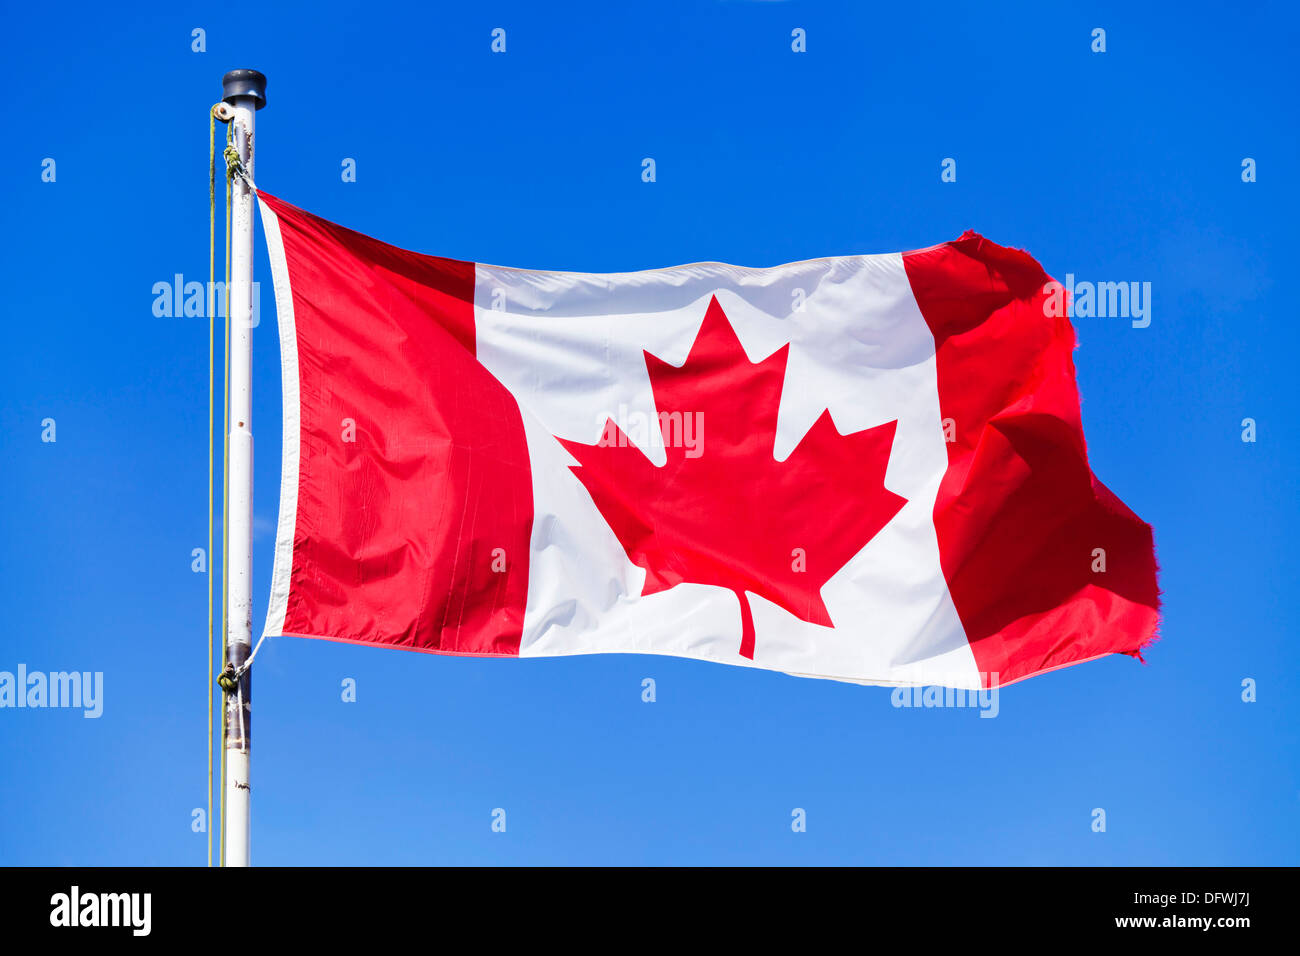 Canadian flag on a flagpole against a blue sky background no clouds canadian rockies canada - Stock Image